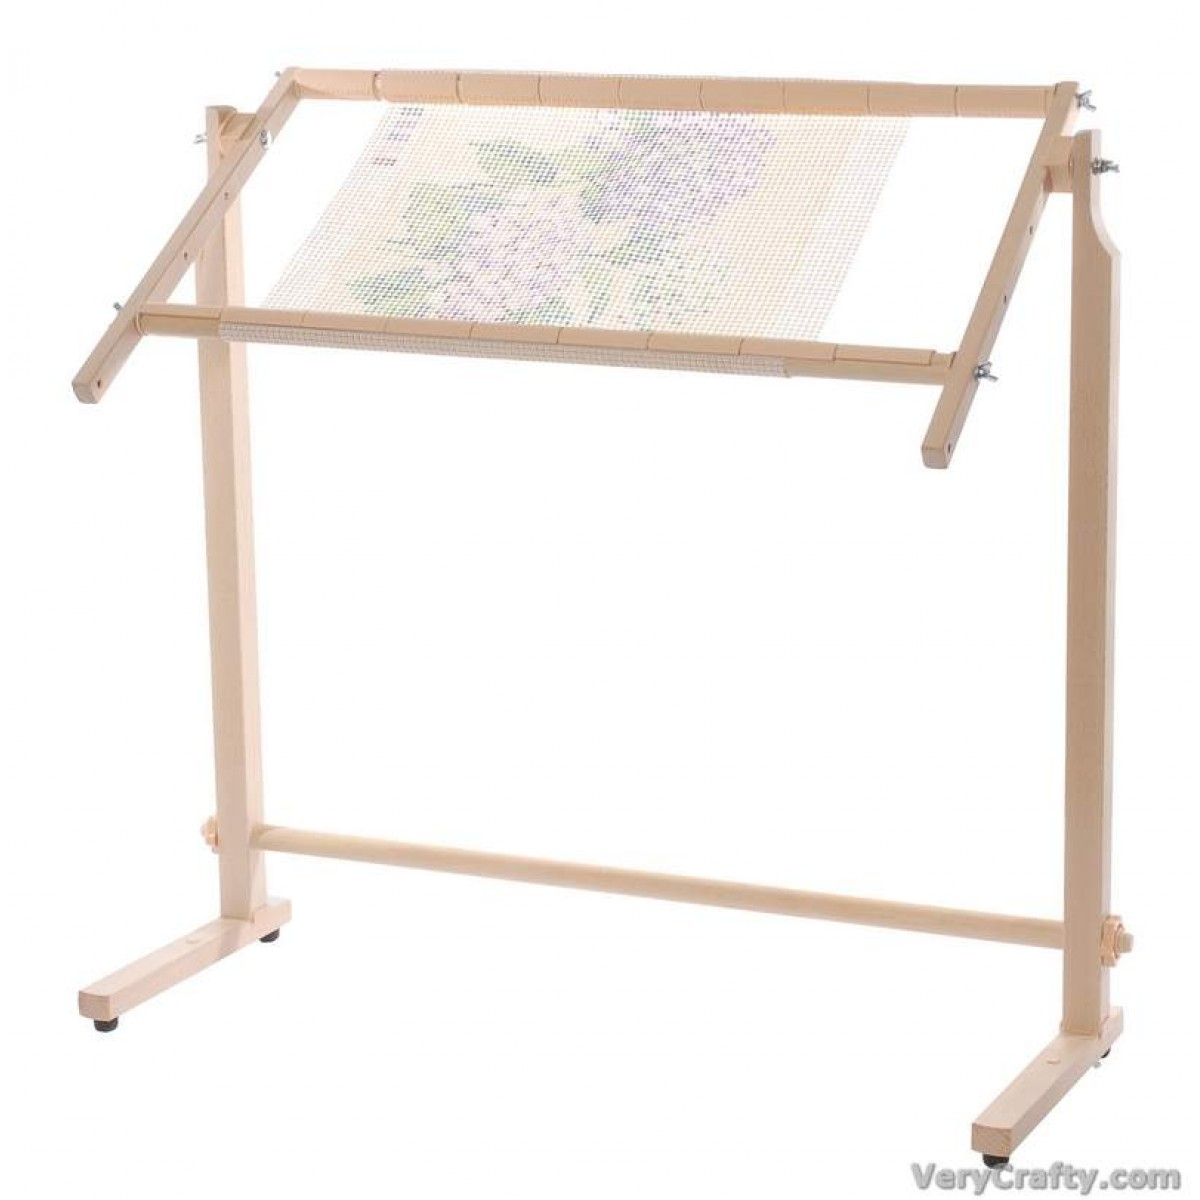 Wood by Elbesee Elbesee Posilock Floor Stand for Embroidery//Quilting Hoops with Rotating Frames Upto 24-Inch